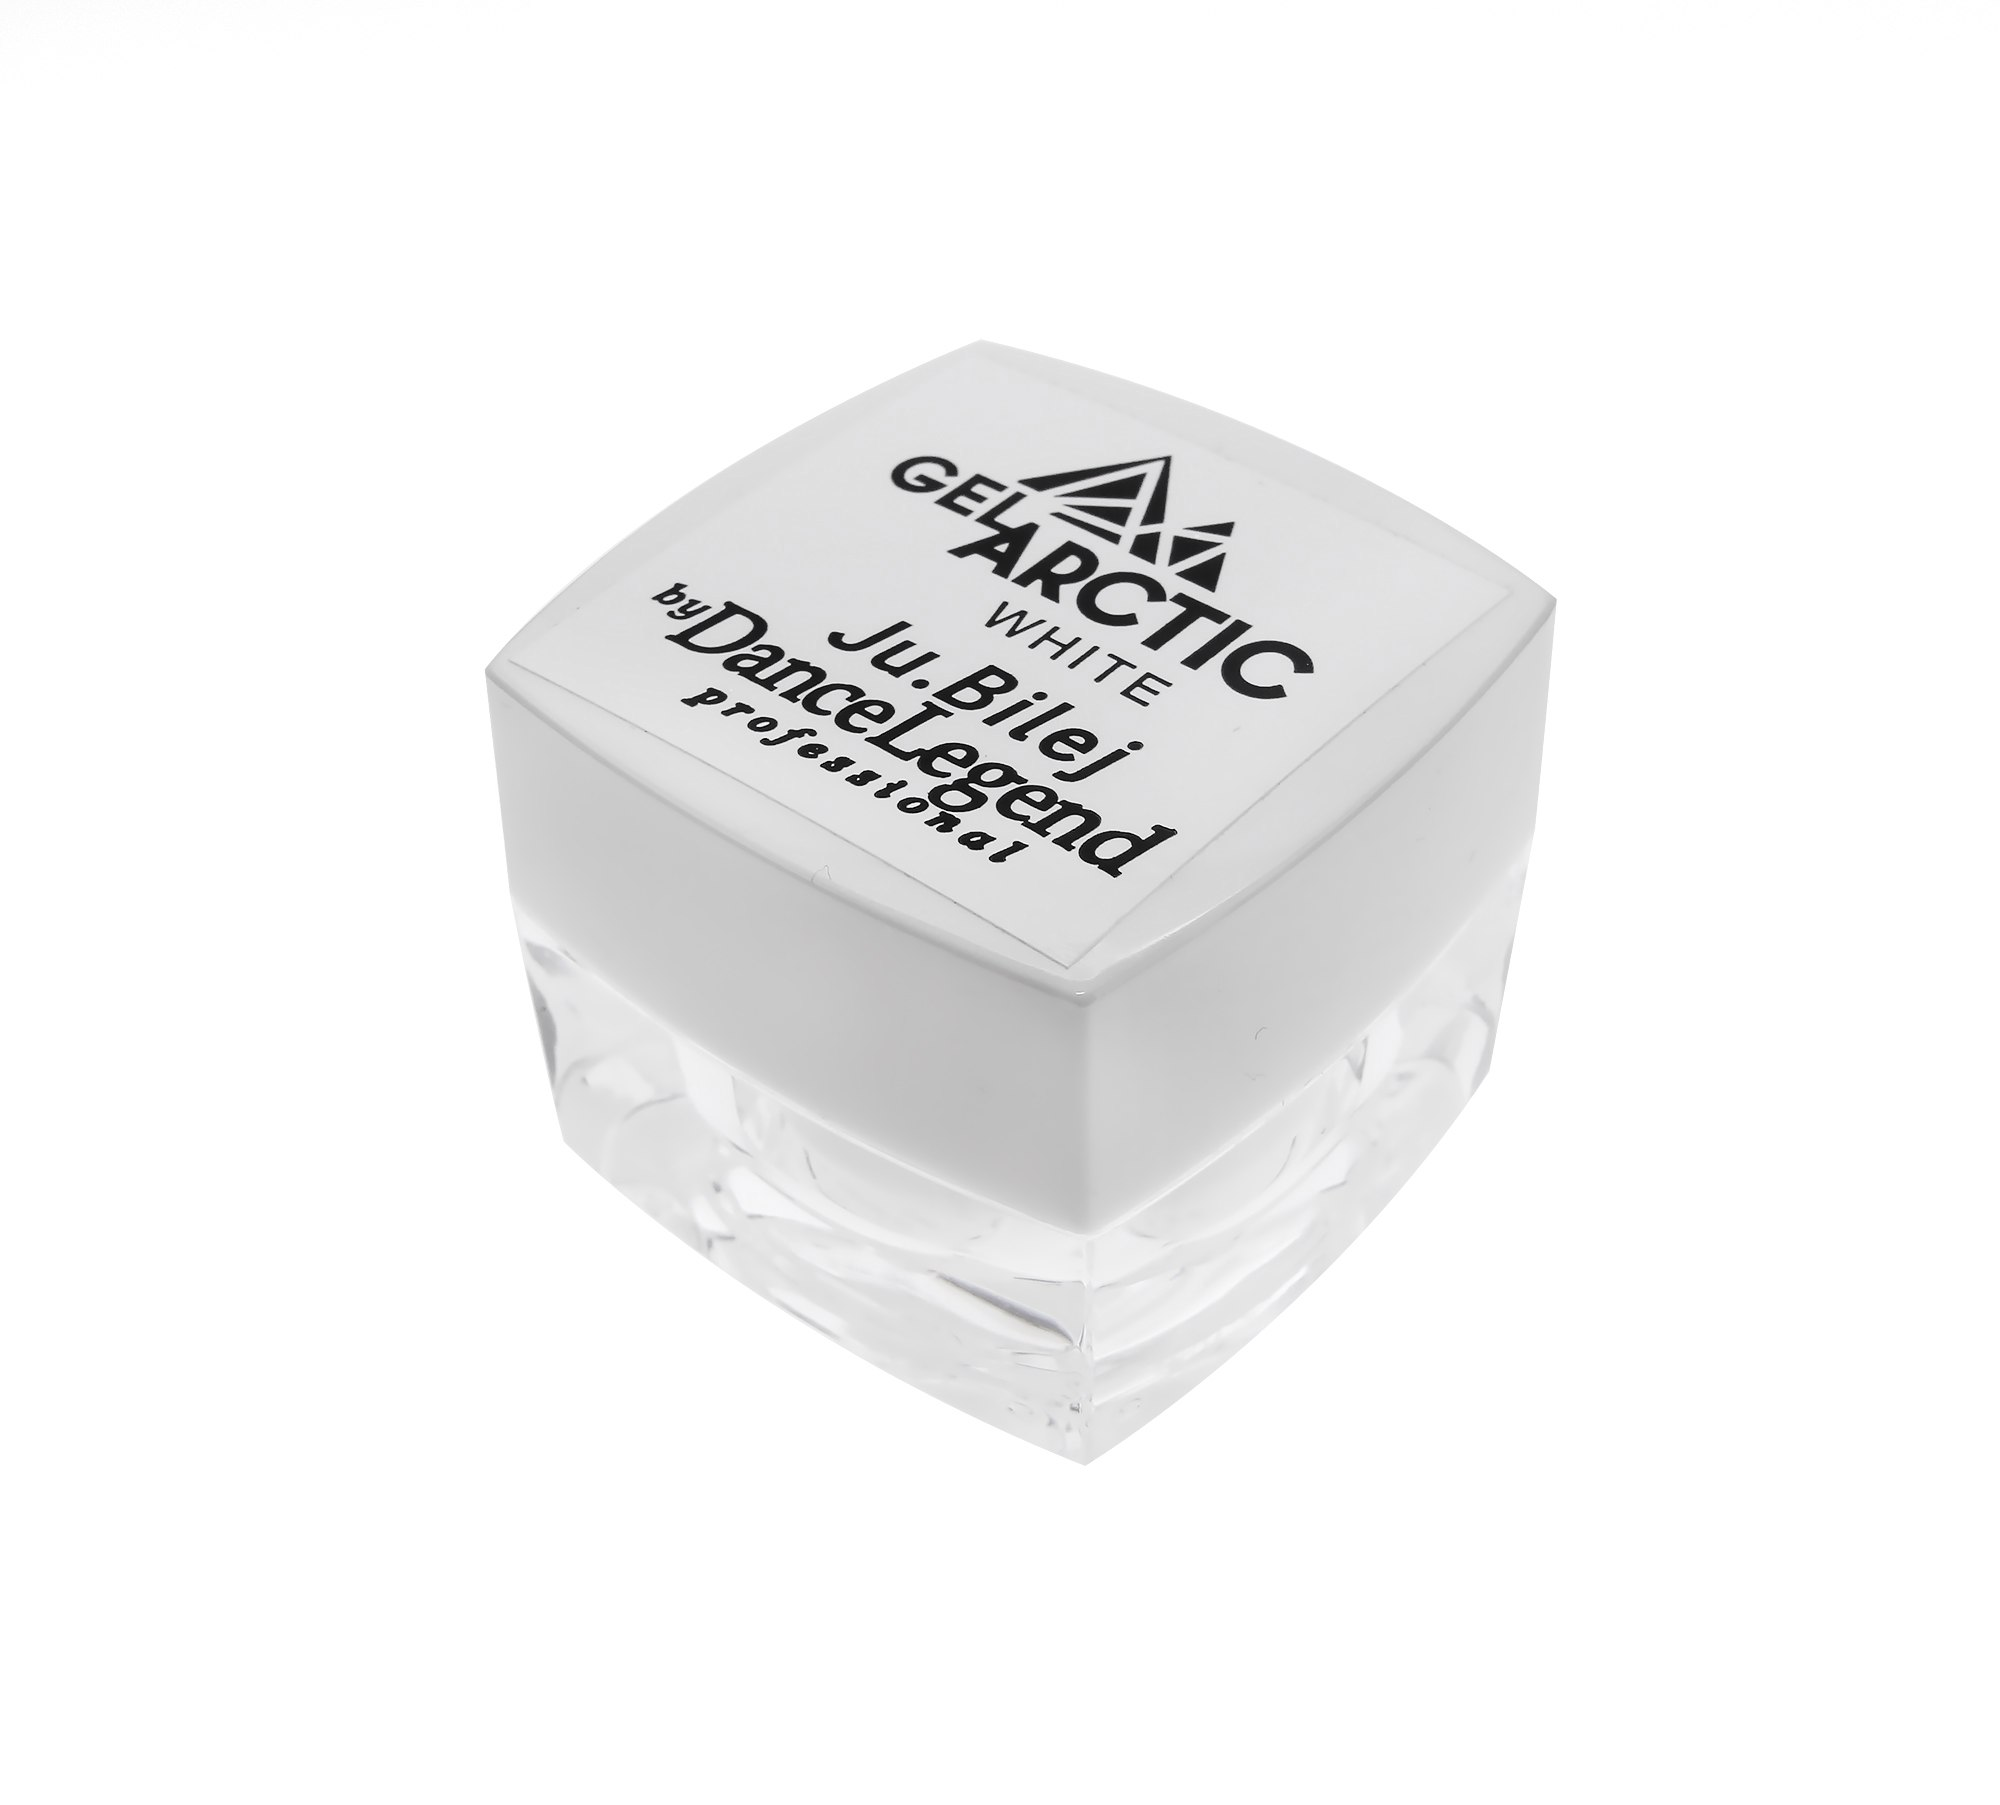 Art Gel - Artic white